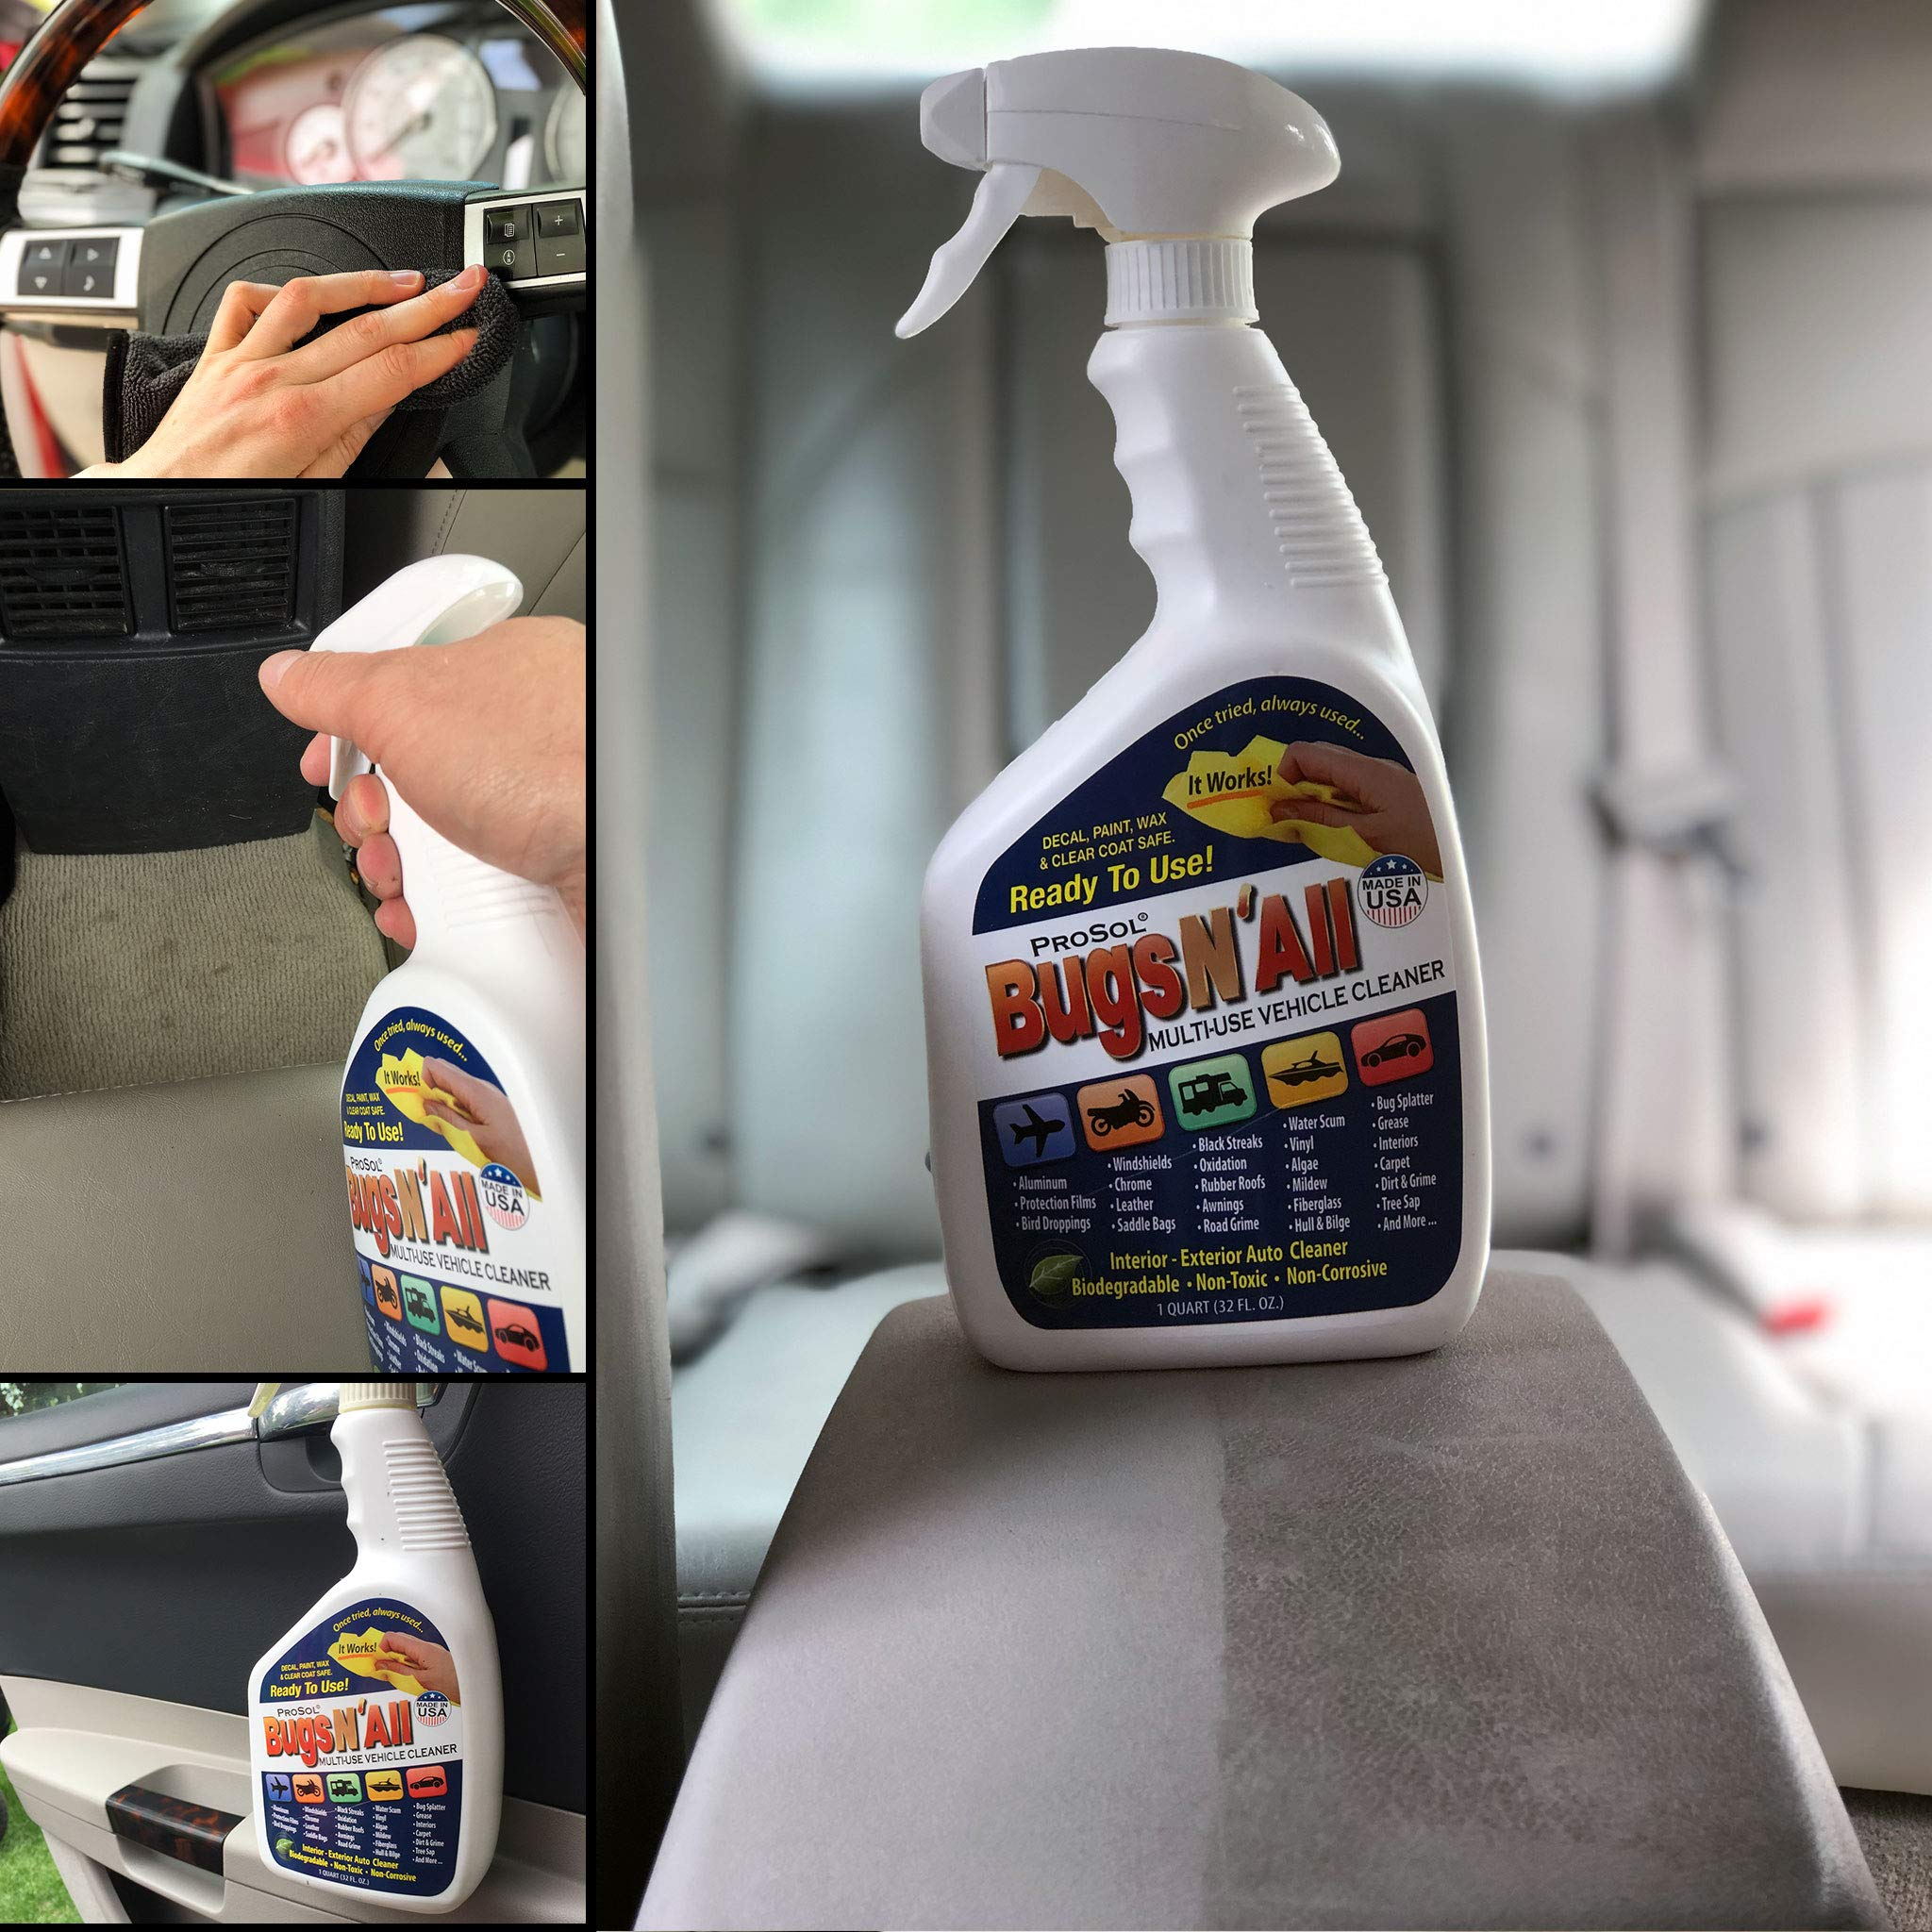 Bugs N All 1 Gal. Concentrate Makes 32 Qts. Pre-Wash Vehicle Cleaner - Bug Splatter and Black Streak Remover. Includes an Empty 32 oz. Spray Bottle - Will Not Remove Wax! by ProSol (Image #4)